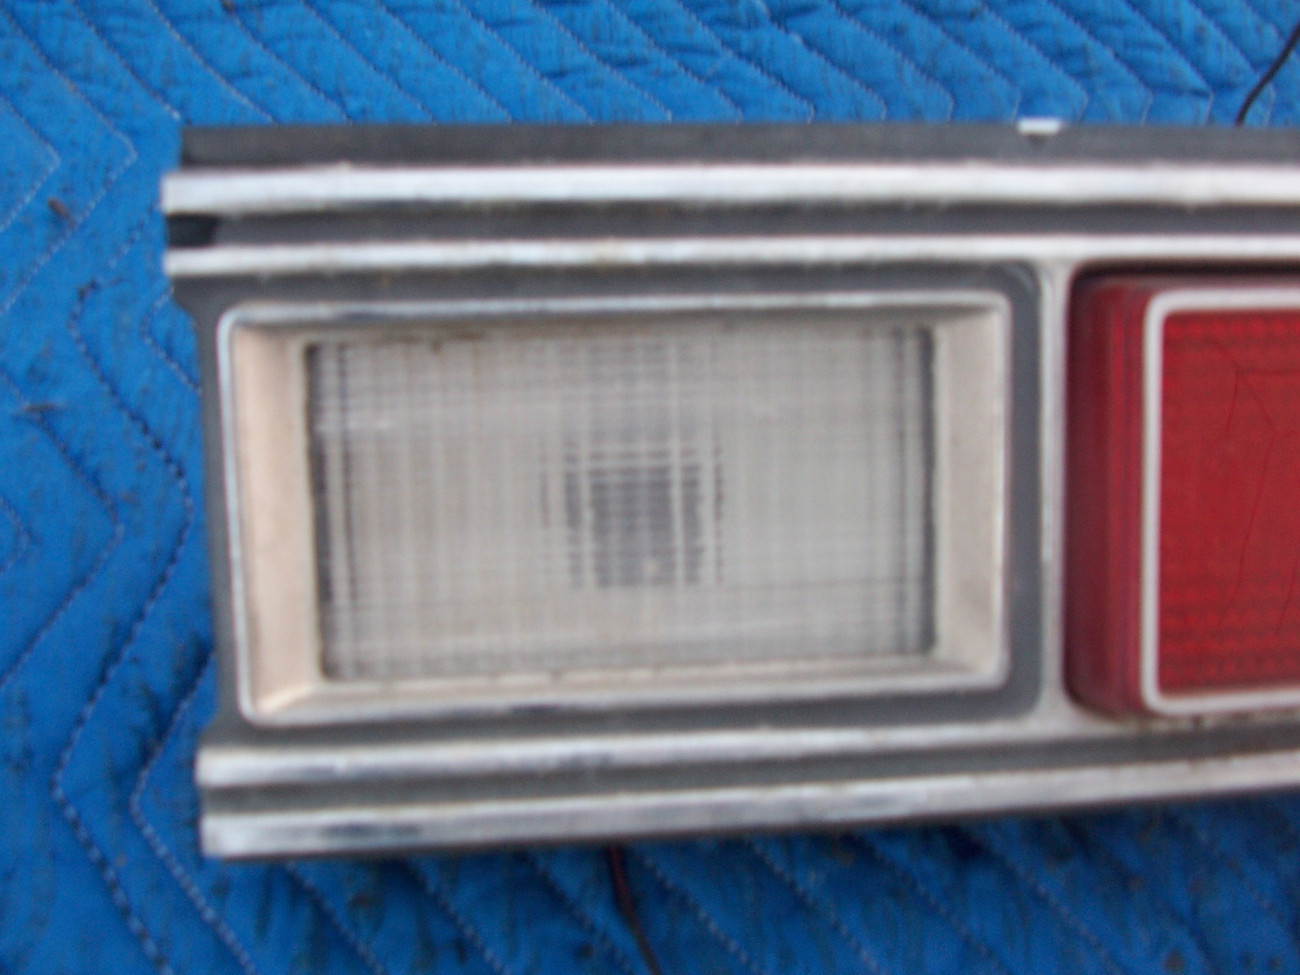 1973 MARQUIS 2 DOOR BROUGHAM RIGHT TAILLIGHT OEM USED ORIGINAL MERCURY FORD PART image 3